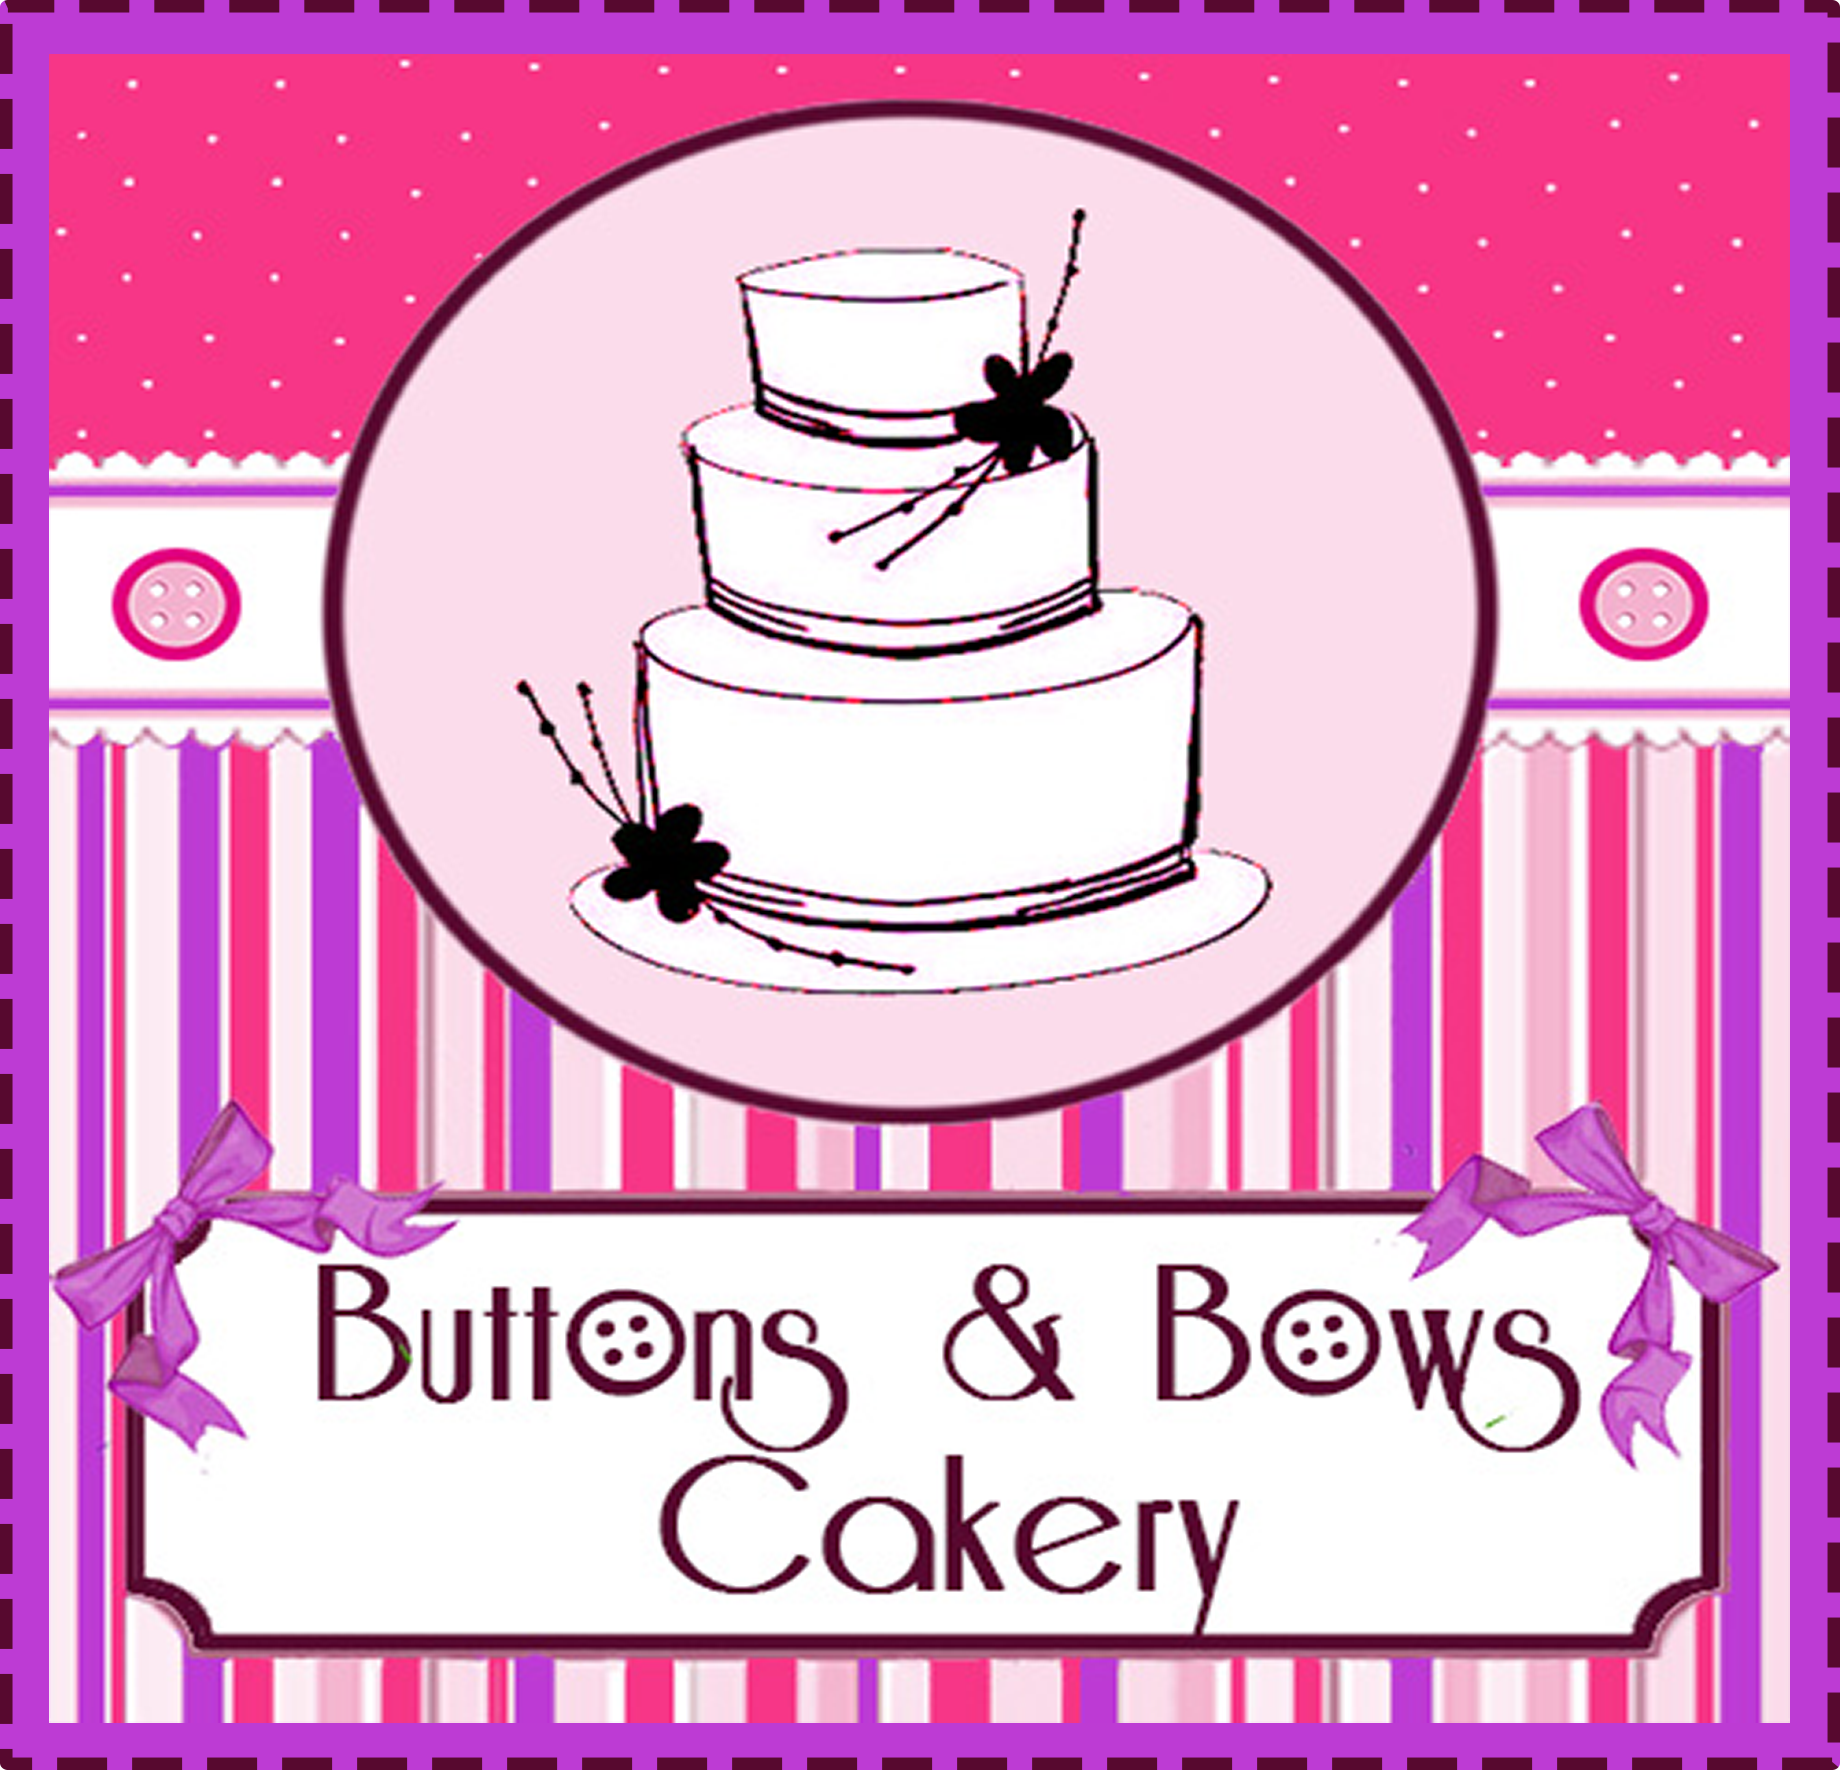 Buttons & Bows Cakery